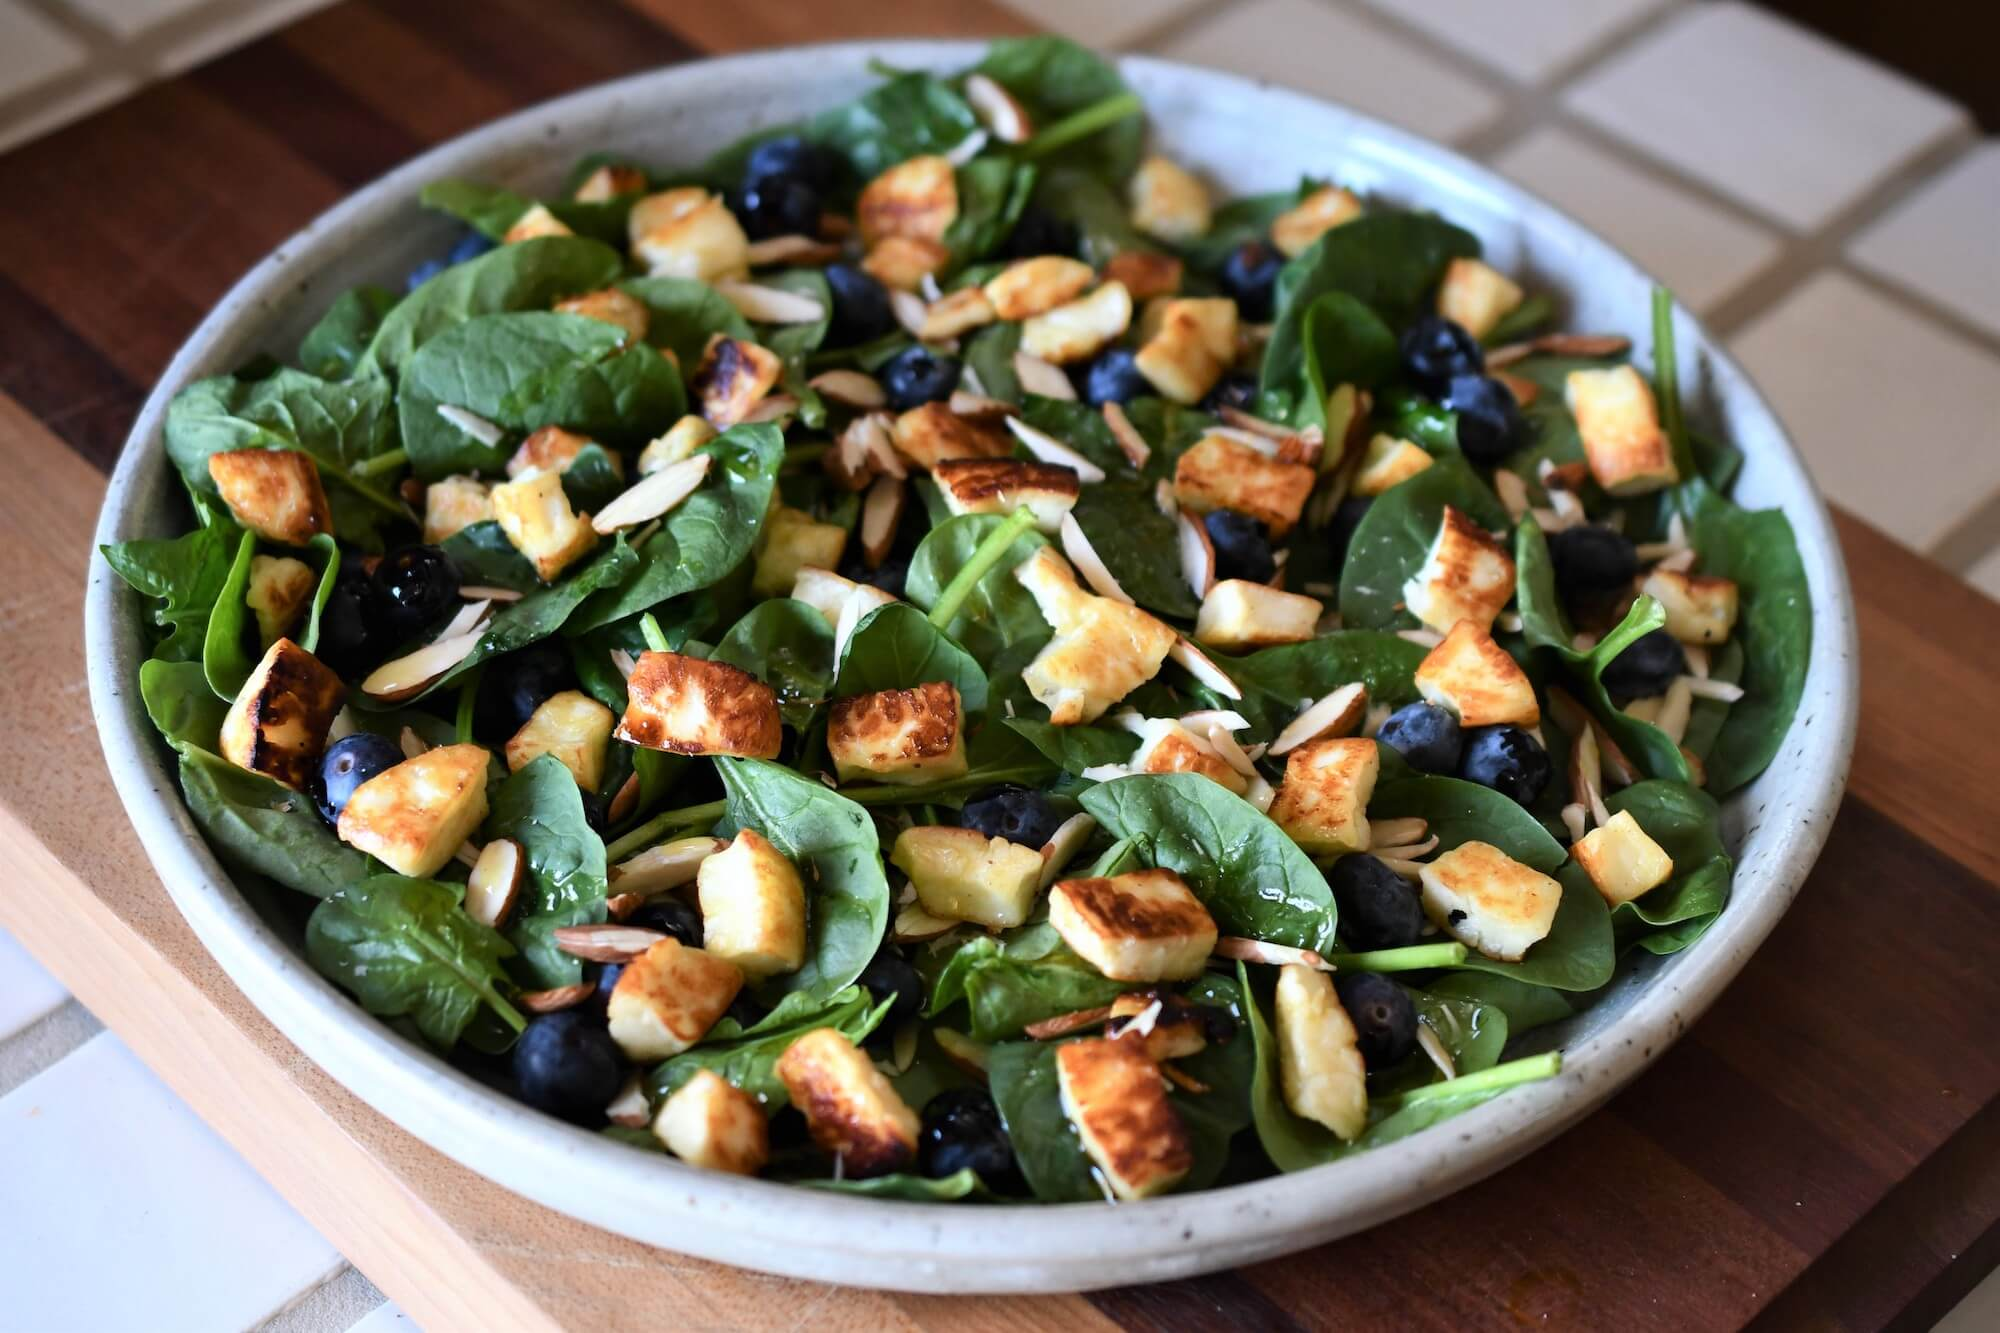 Spinach Salad with Cheese, Blueberries and Shaved Almonds